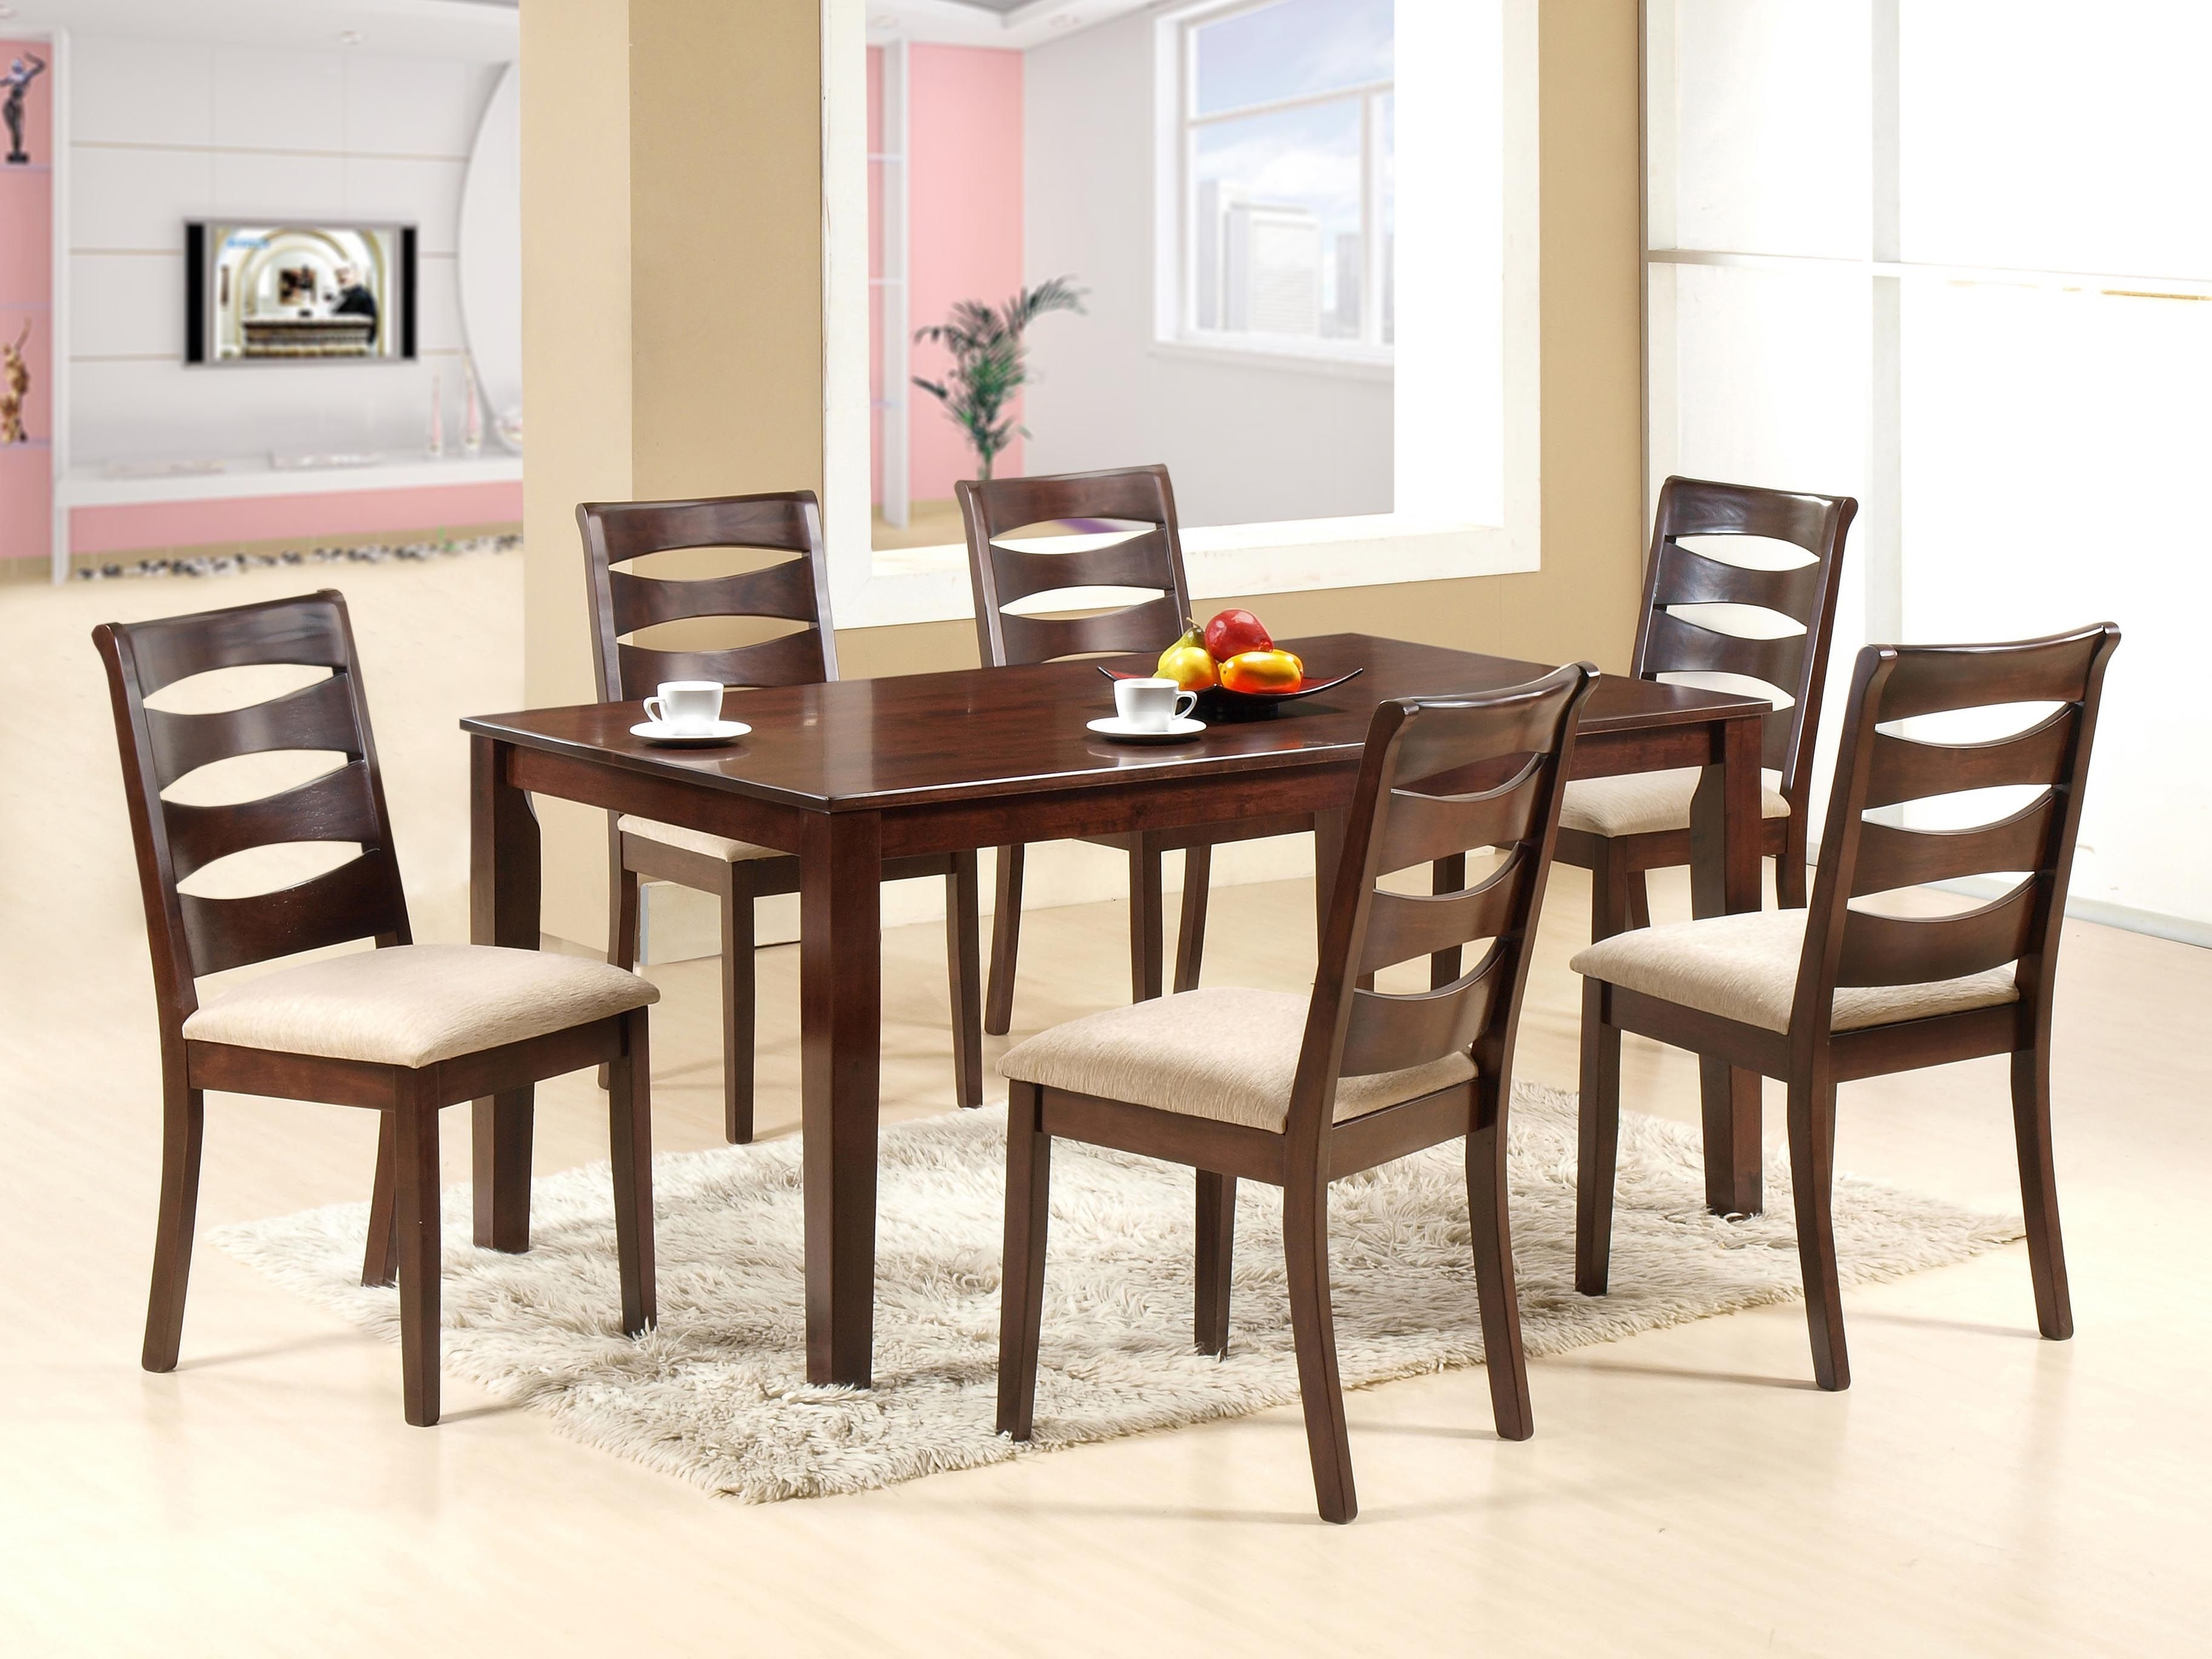 Pinthe Furniture Republic On Dining Sets | Pinterest | Dining For Newest Candice Ii 6 Piece Extension Rectangle Dining Sets (View 15 of 20)